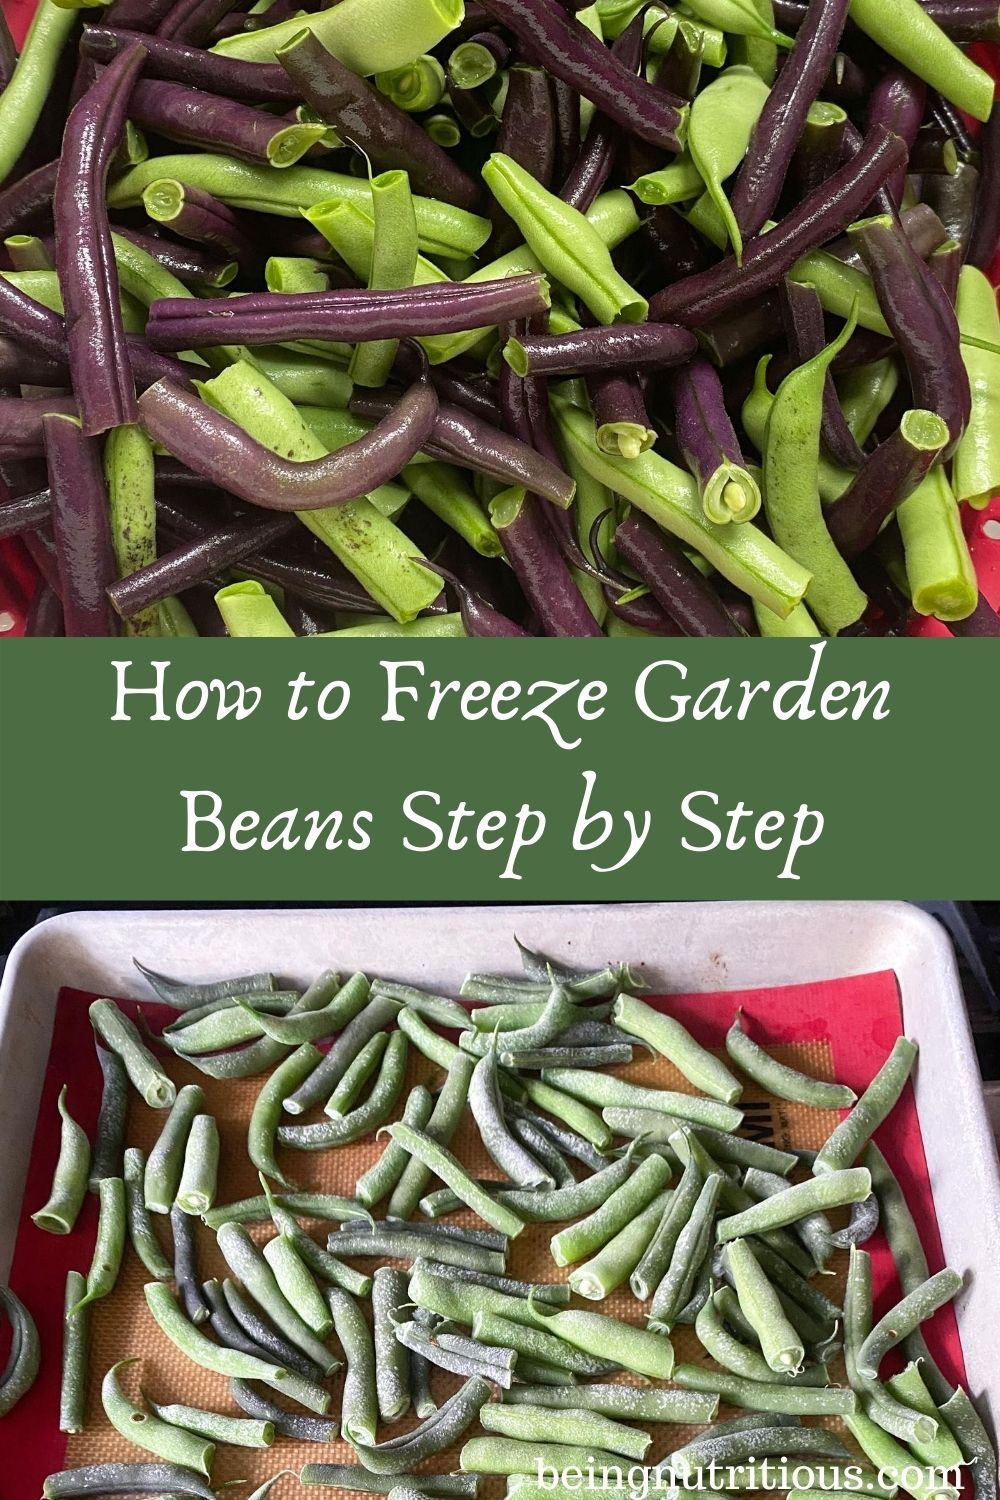 Split image: top is fresh beans, bottom is frozen beans on cookie sheet. Text overlay in green rectangle: How to Freeze Garden Beans Step by Step.